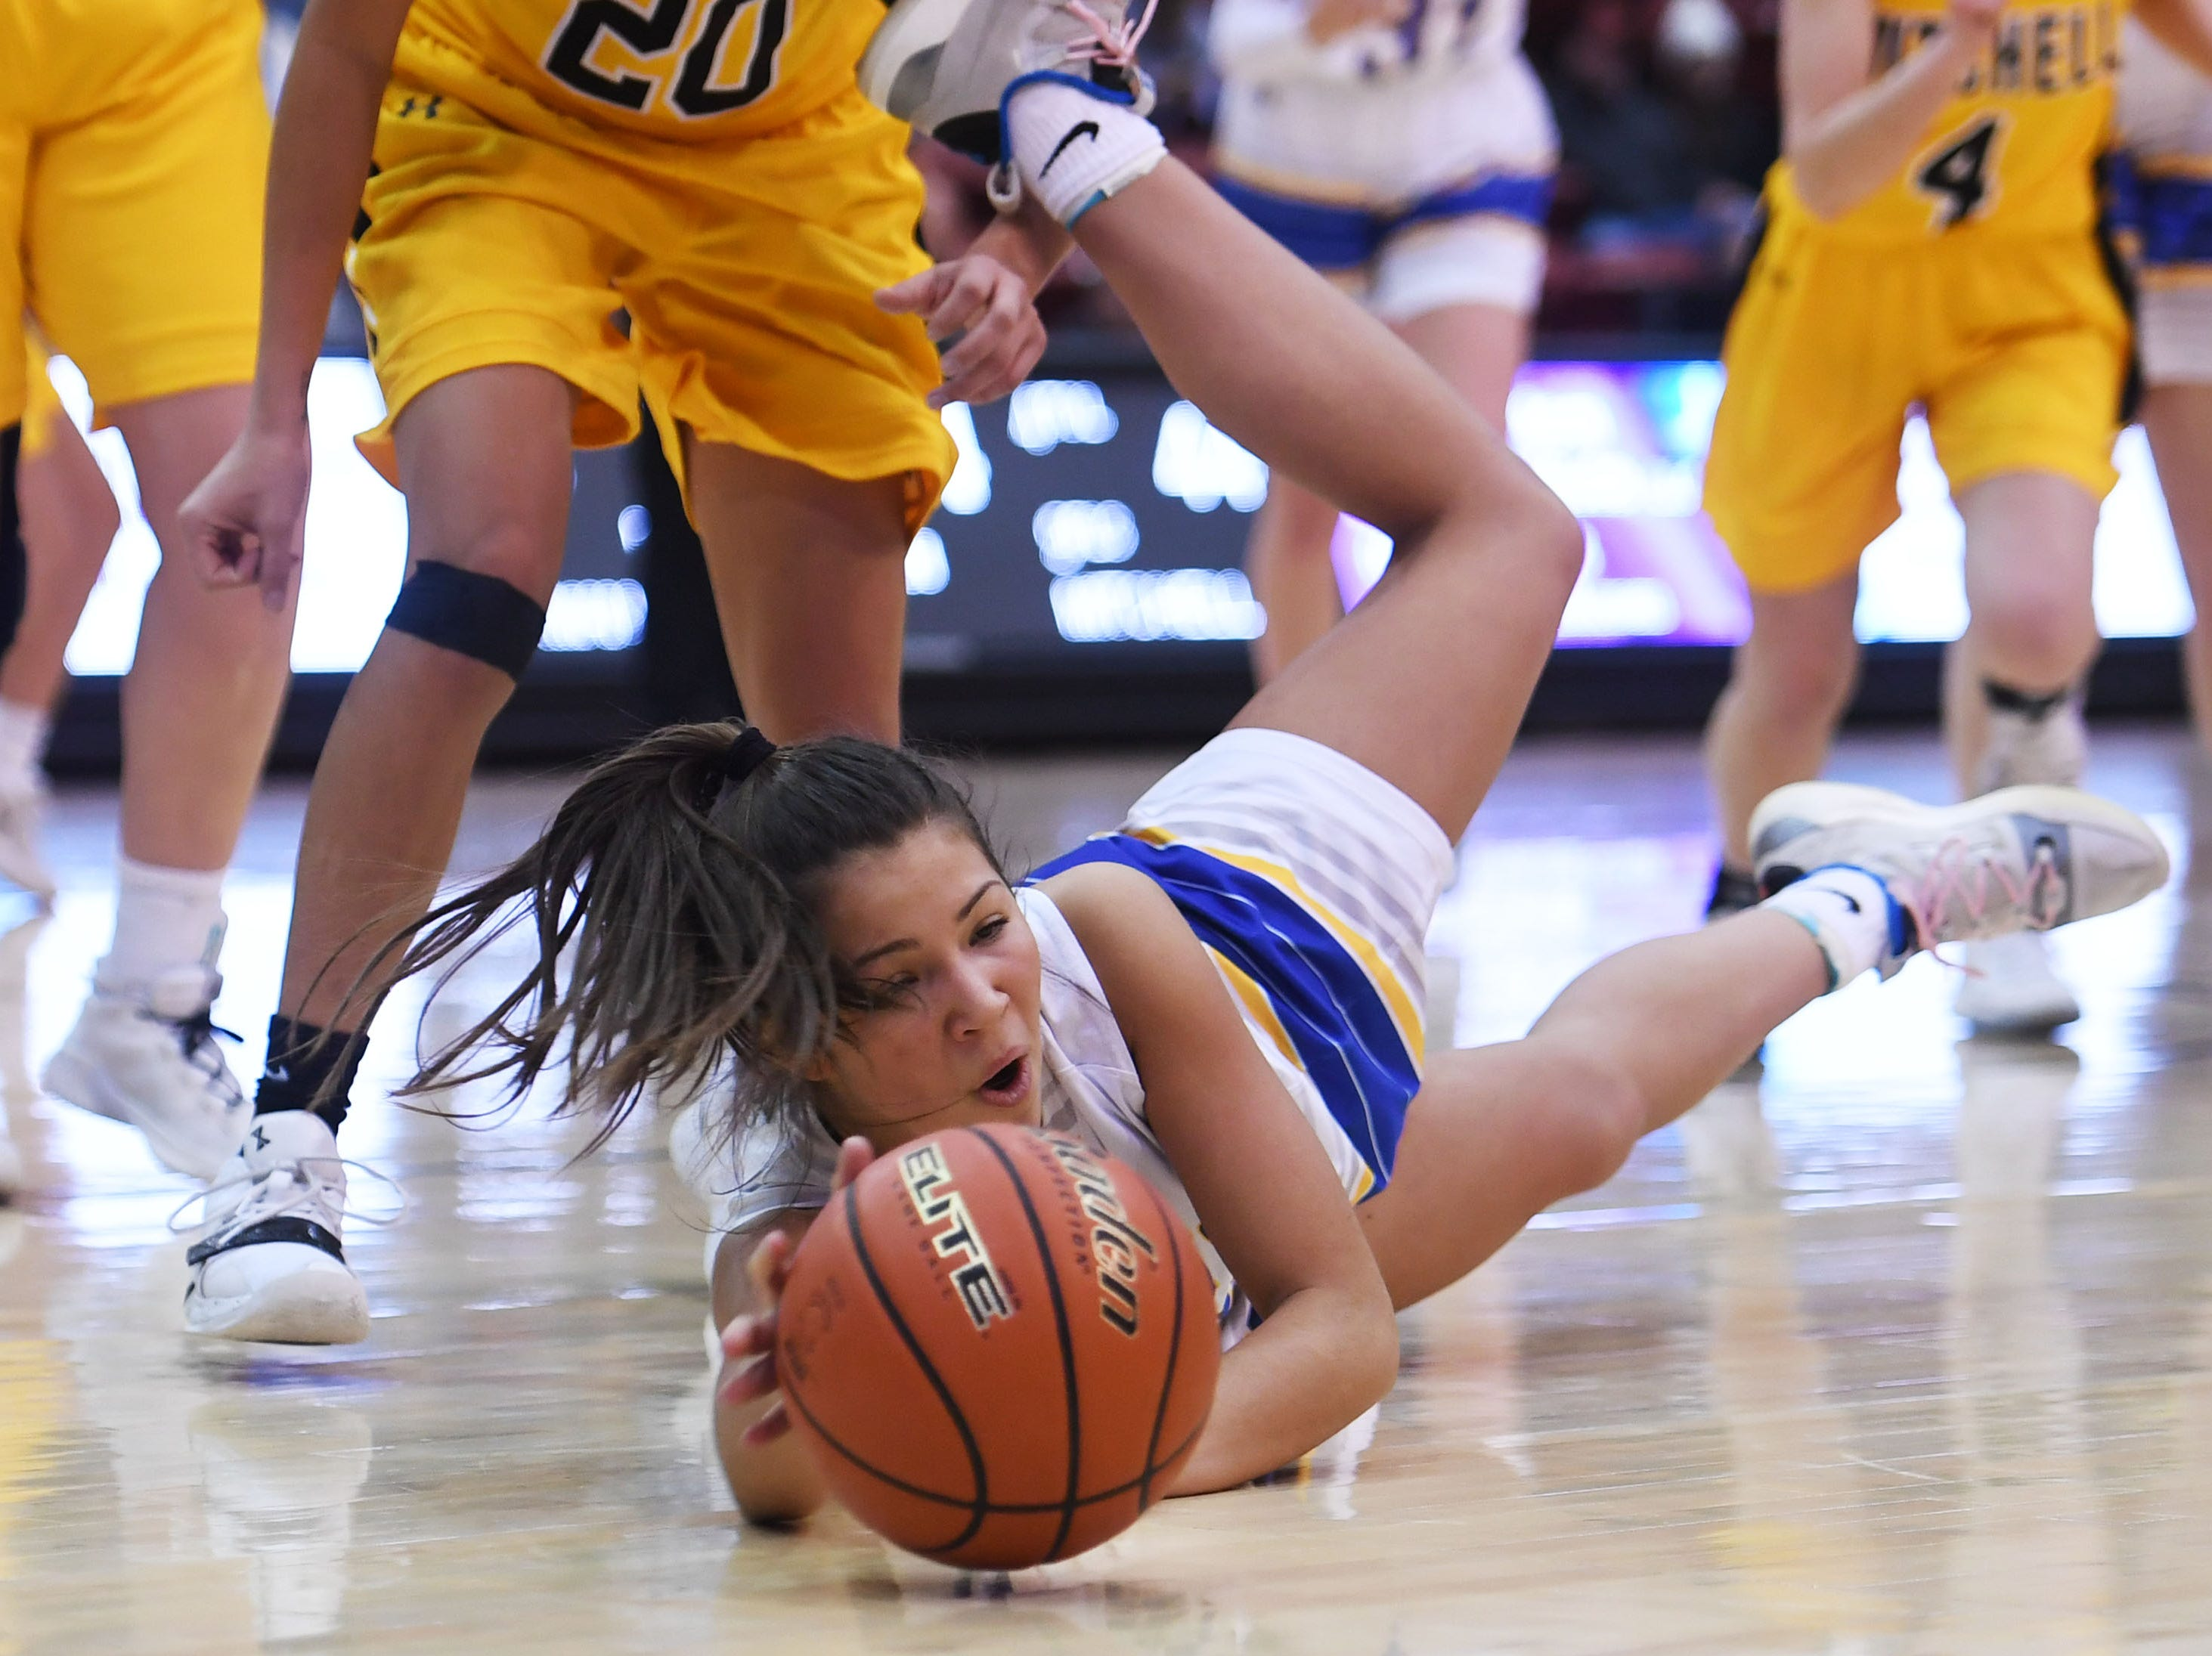 O'Gorman's Isabelle Moore attempts to gain control of the ball during the game against Mitchell in the Class AA quarterfinals Thursday, March 14, in Rapid City.